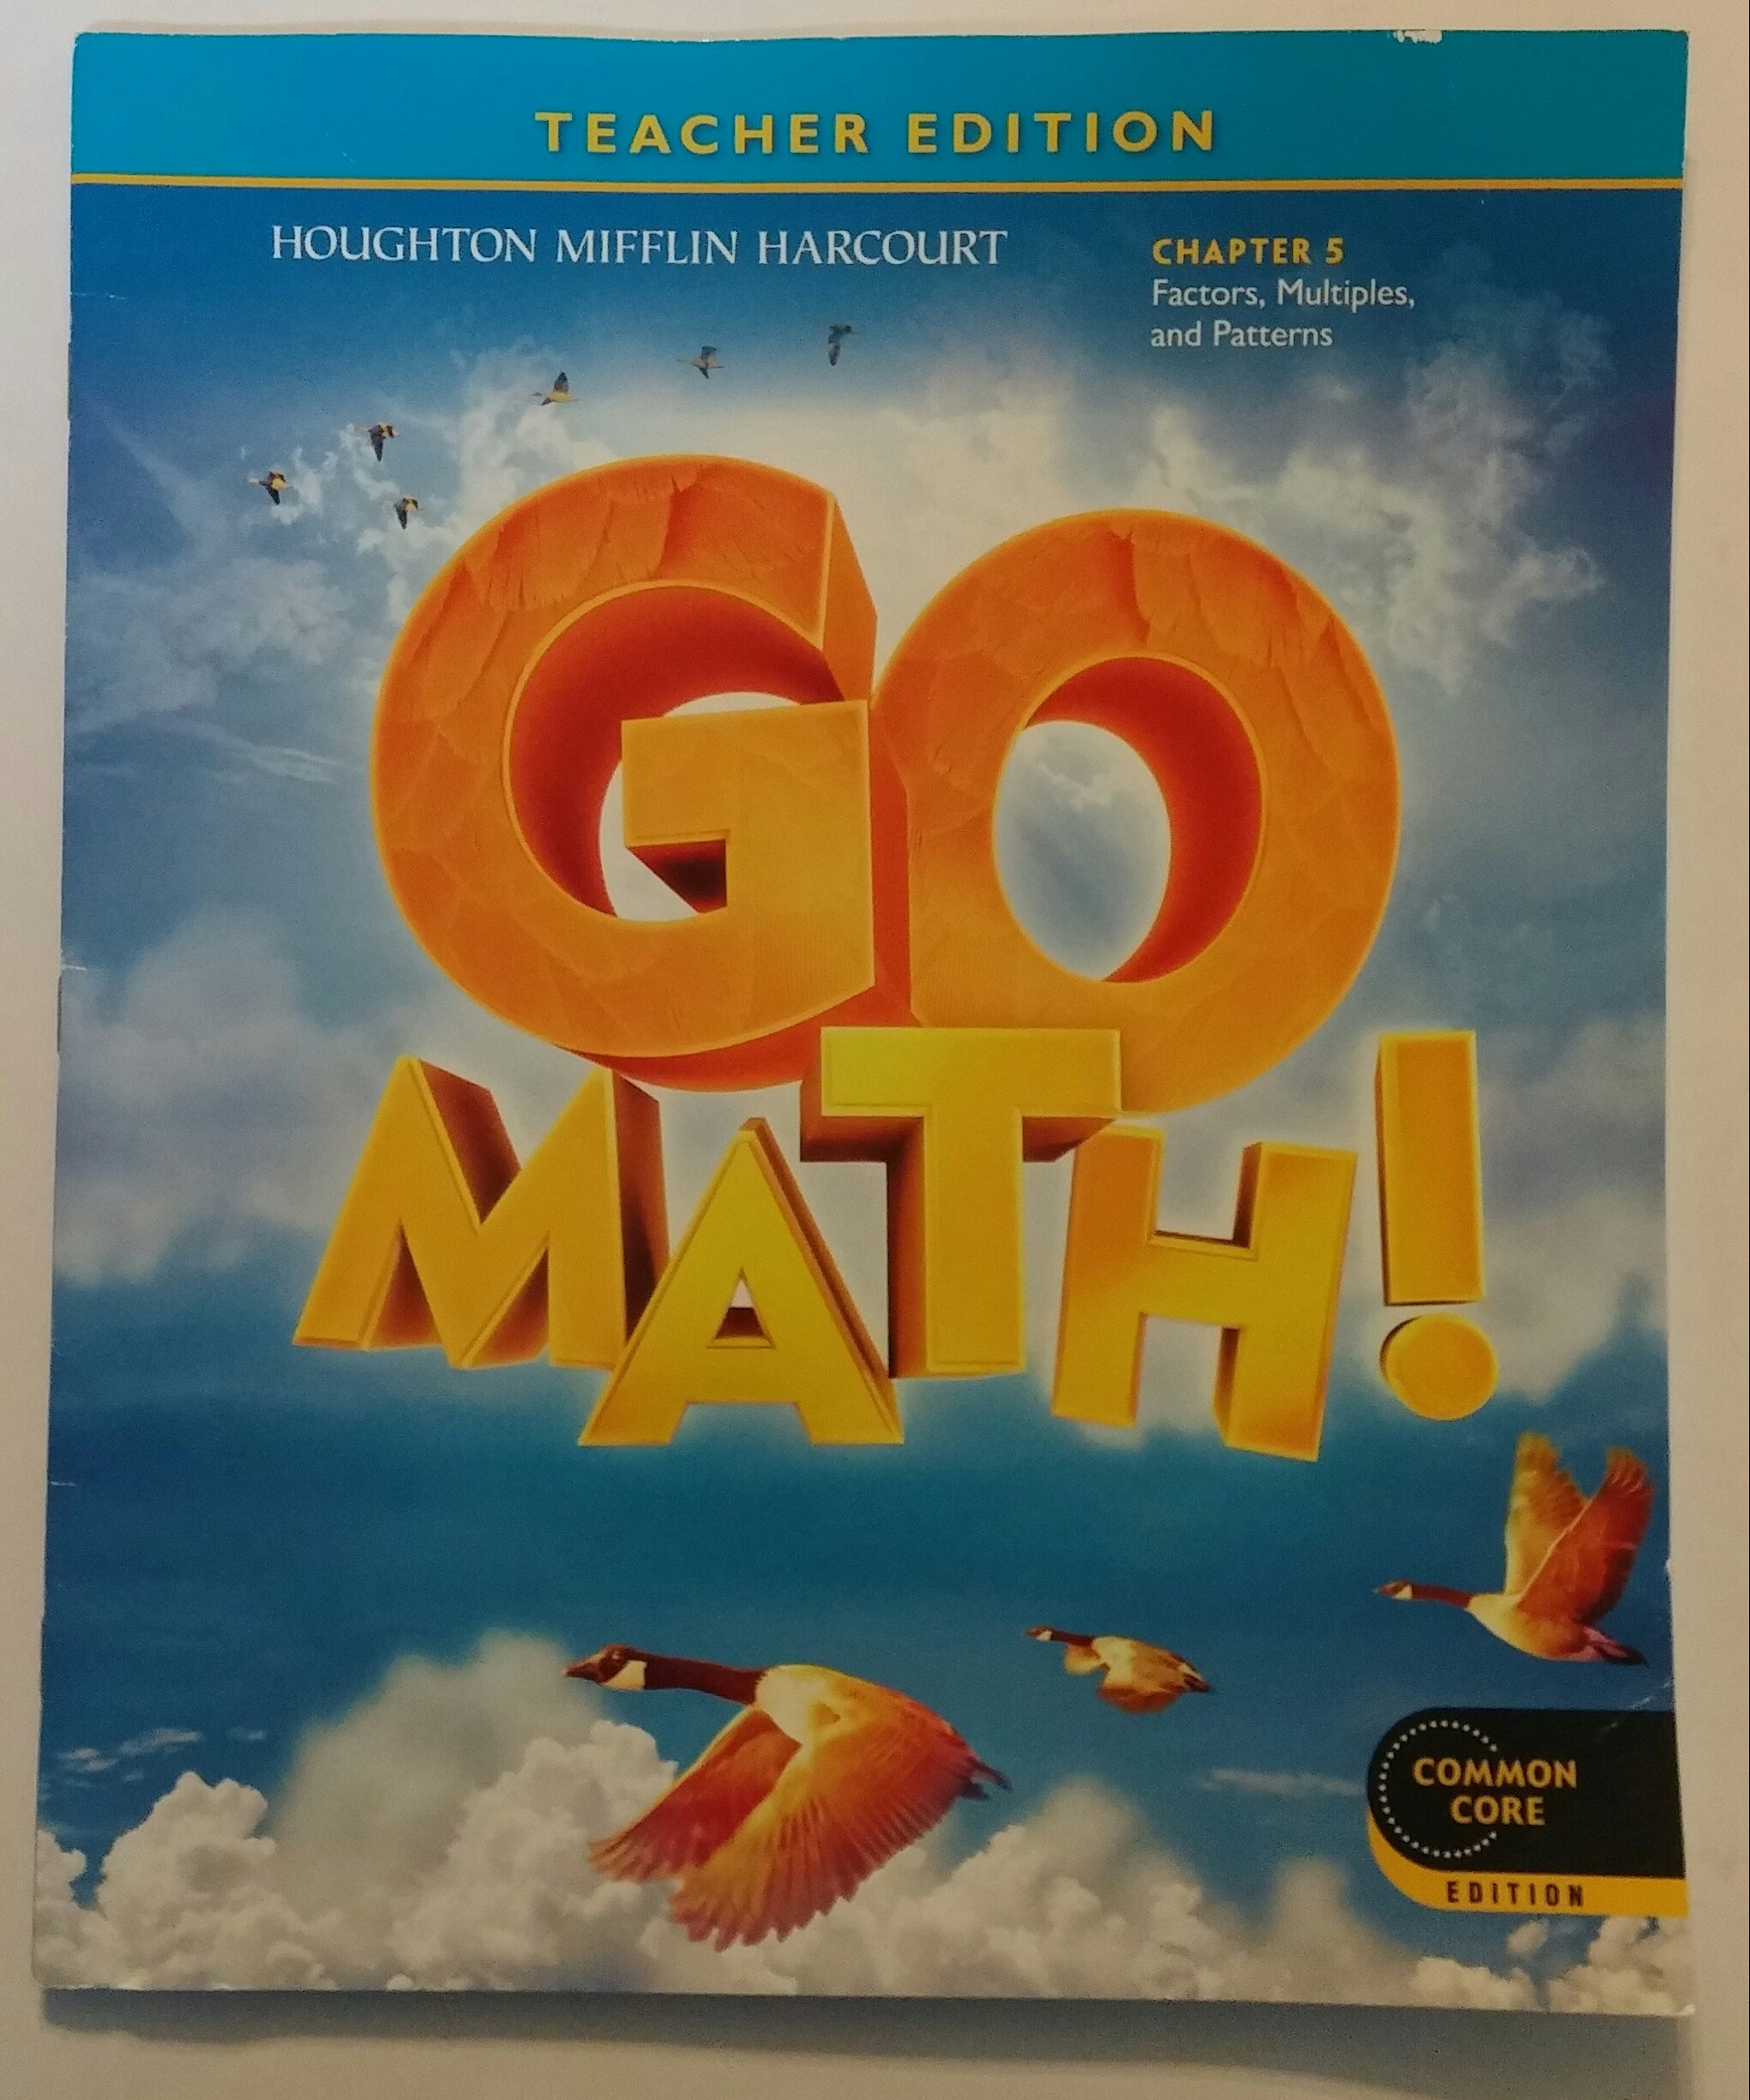 Worksheets Houghton Mifflin Harcourt Math Worksheets amazon com go math grade 4 chapter 3 multiply 2 digit numbers teacher edition common core isbn 9780547591407 9780547